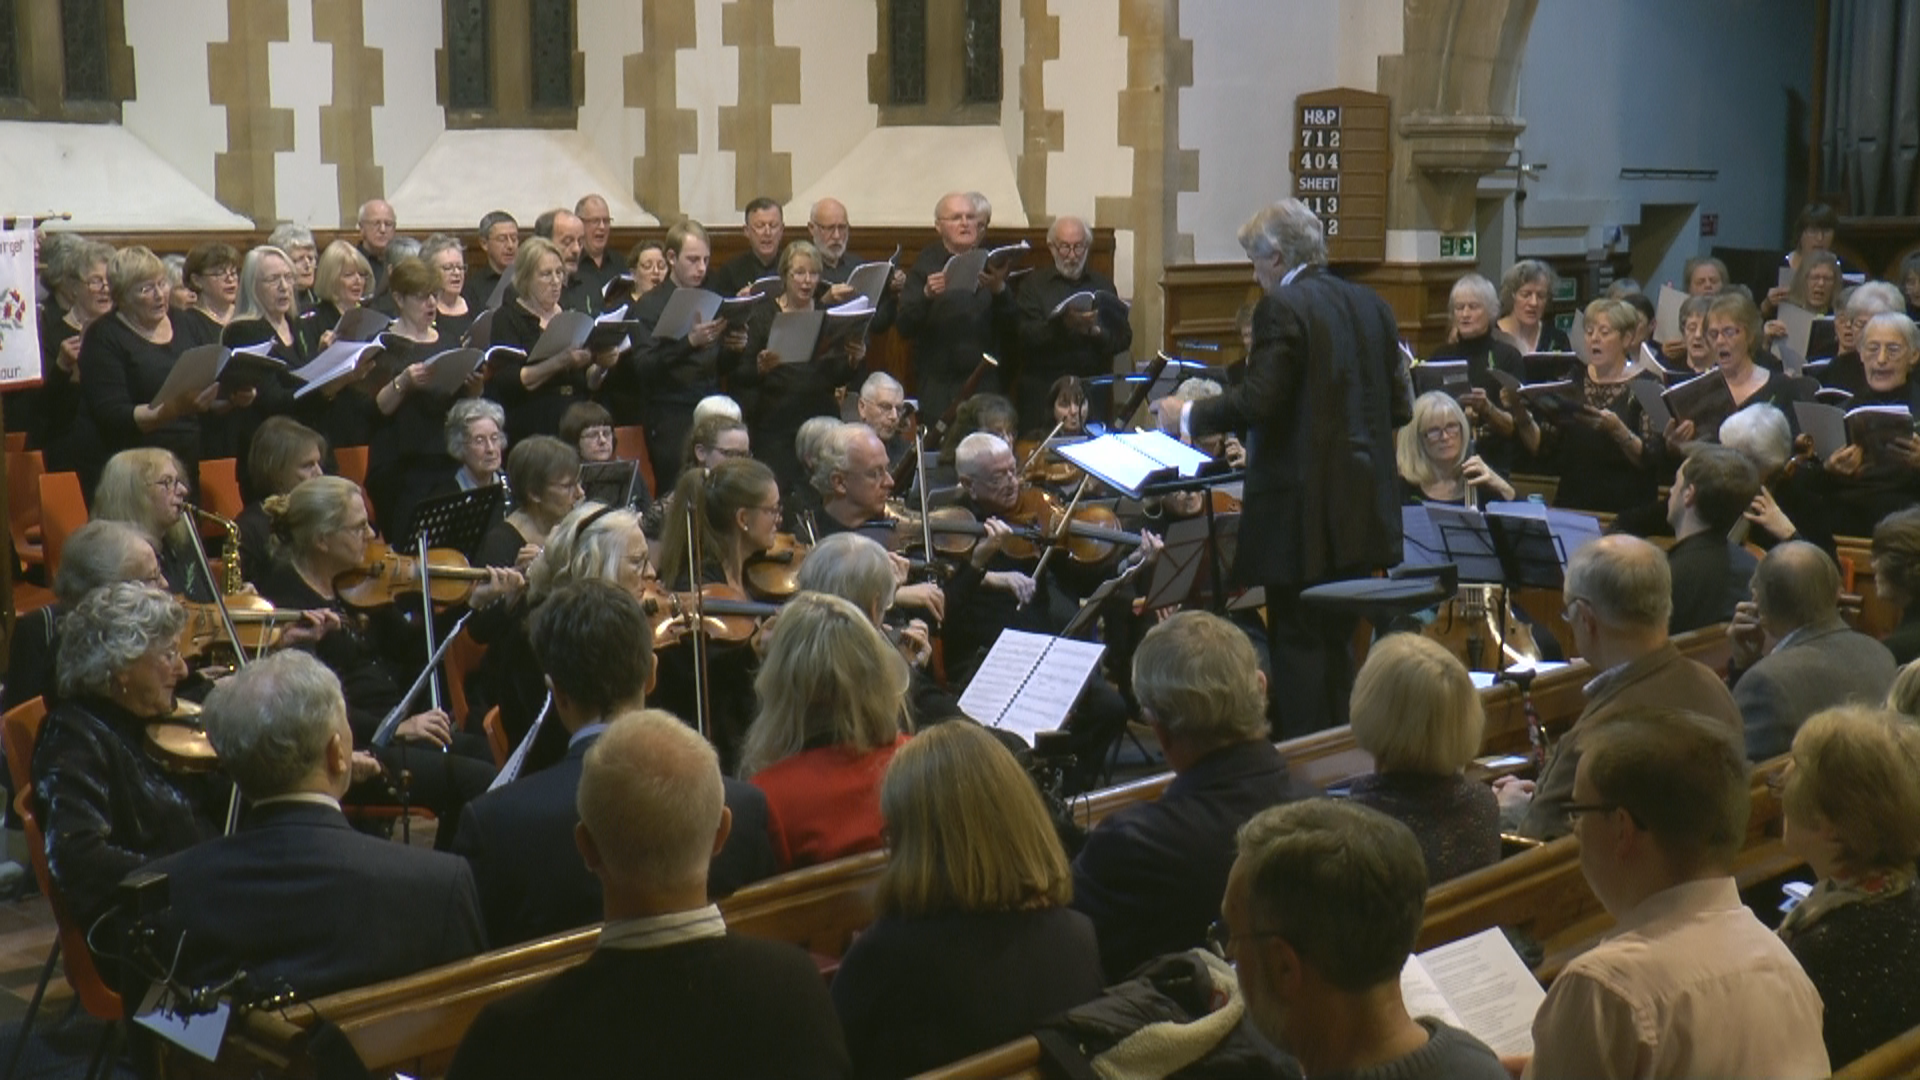 Choir & orchestra with Nigel conducting